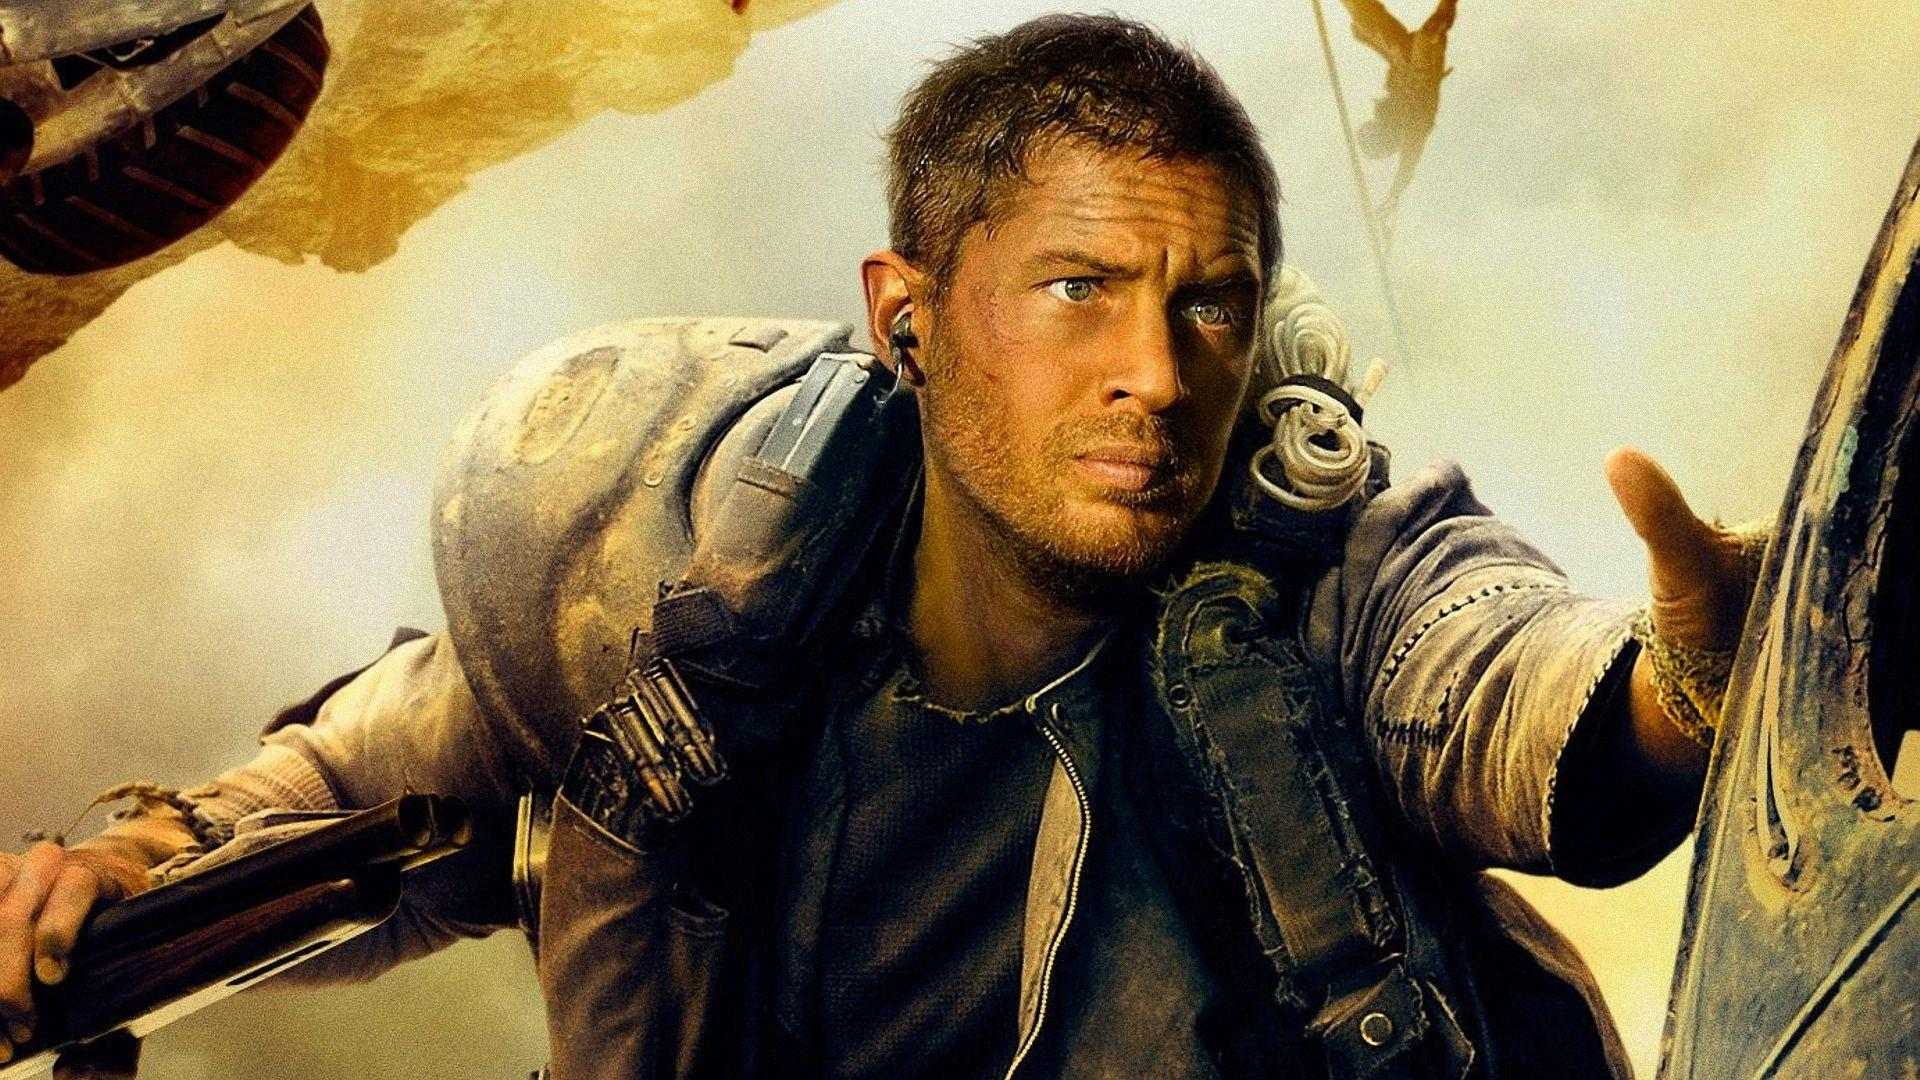 Mad Max Tom Hardy Wallpapers, Download Free HD Wallpapers